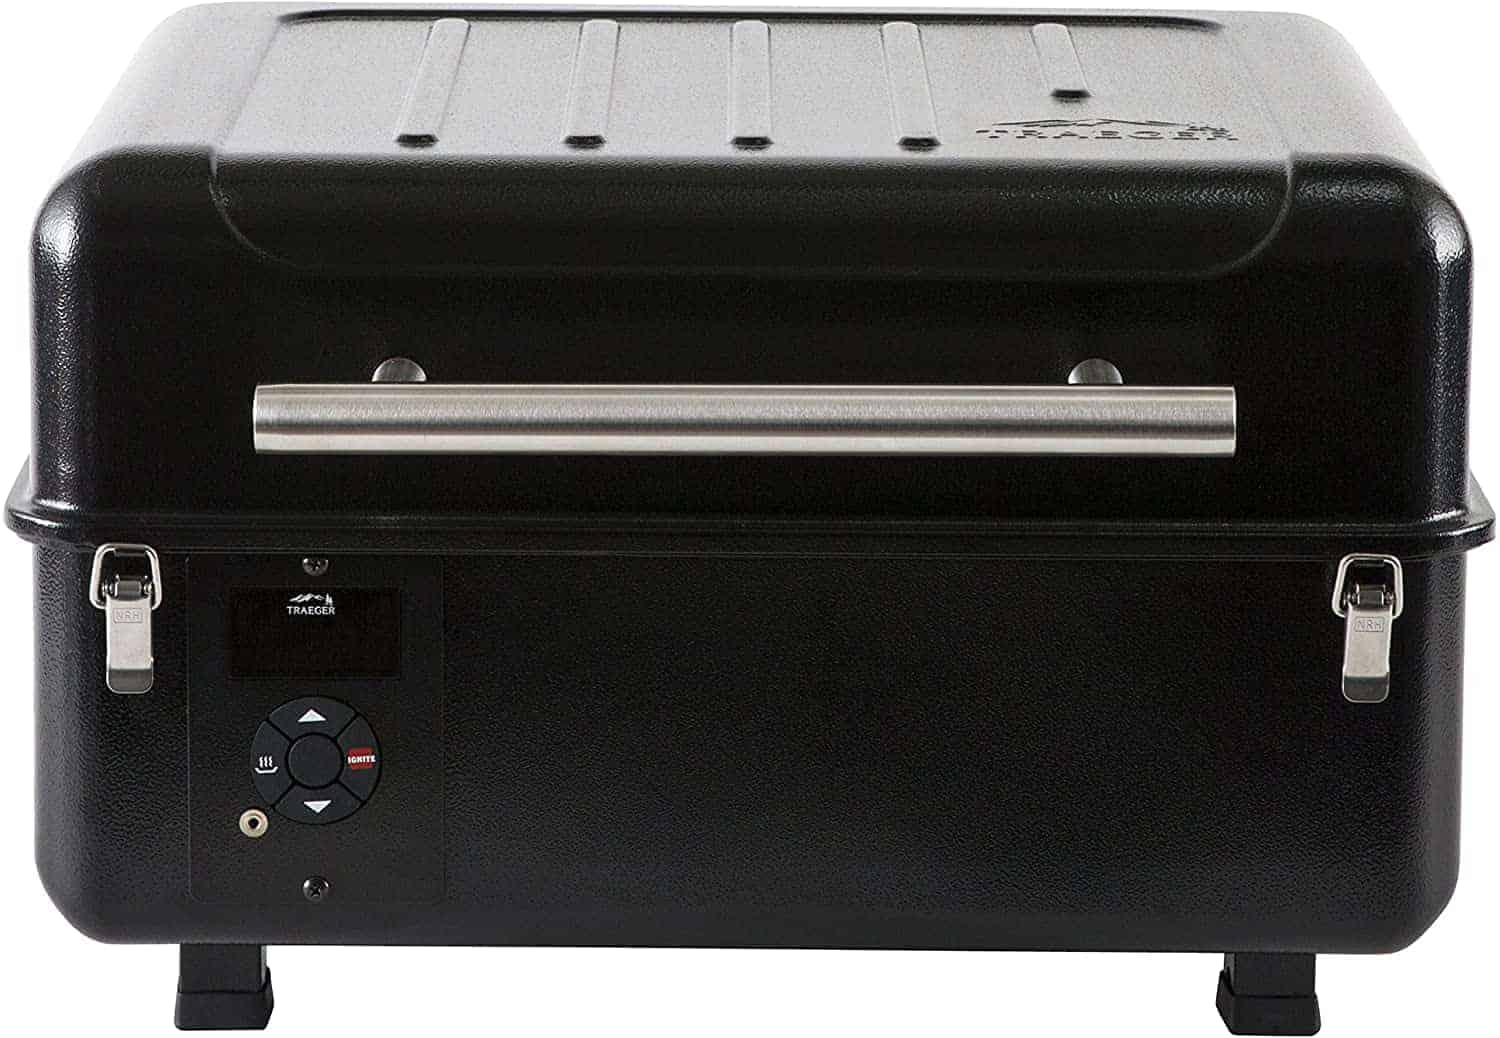 Traeger Grills Ranger Wood Pellet Grill and Smoker Combo - everymanscave.com